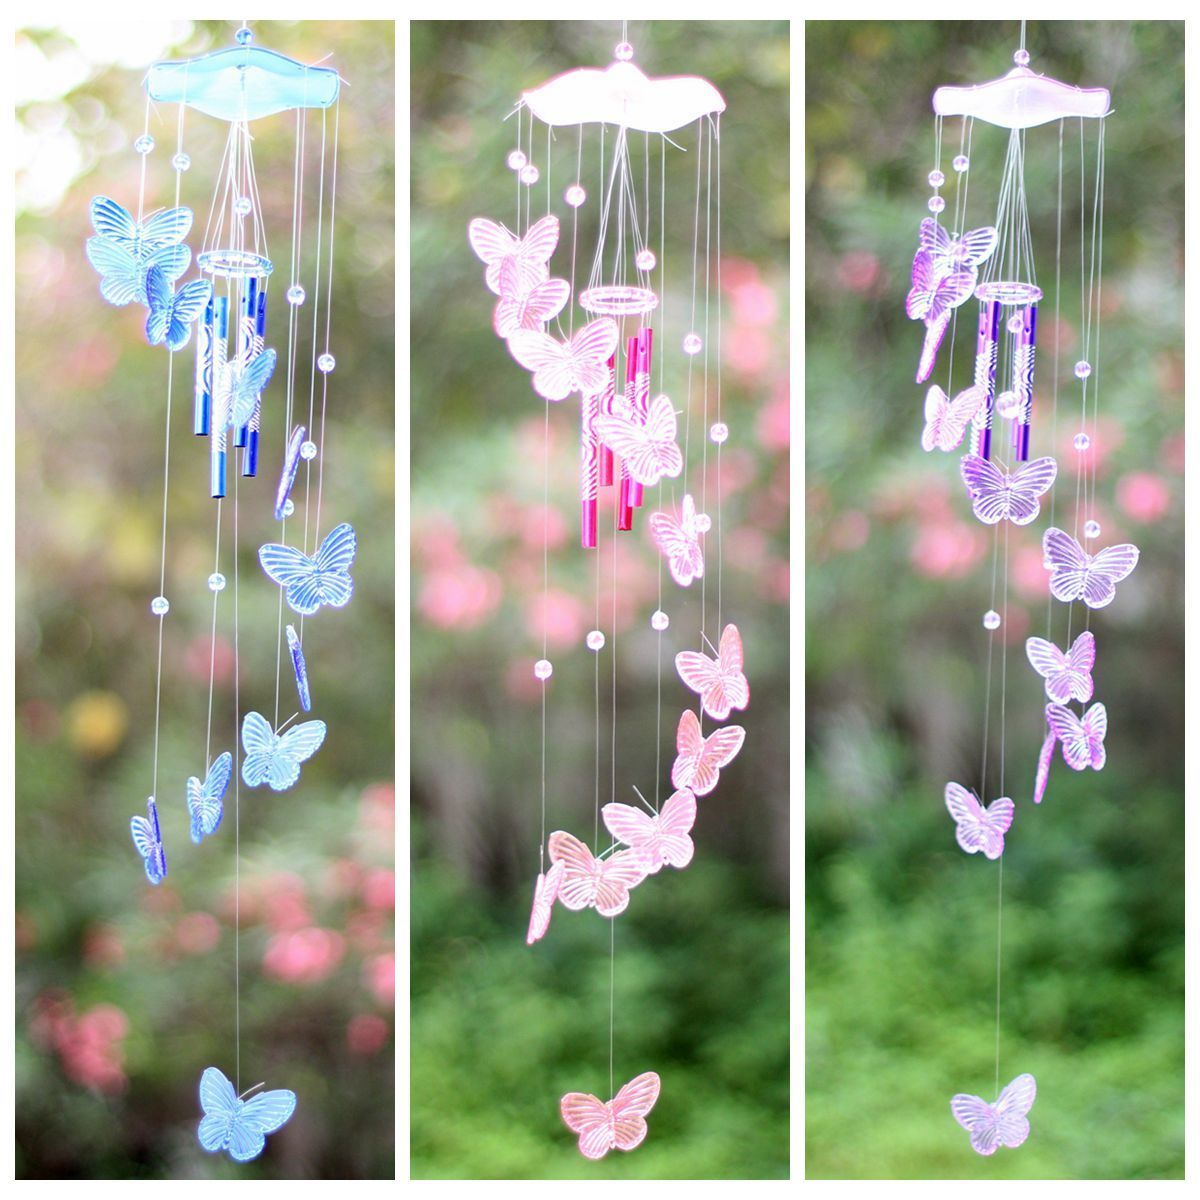 Creative Crystal Butterfly Mobile Wind Chime Bell Garden Ornament Gift Yard Garden Living Hanging Decor Art Home Decoration